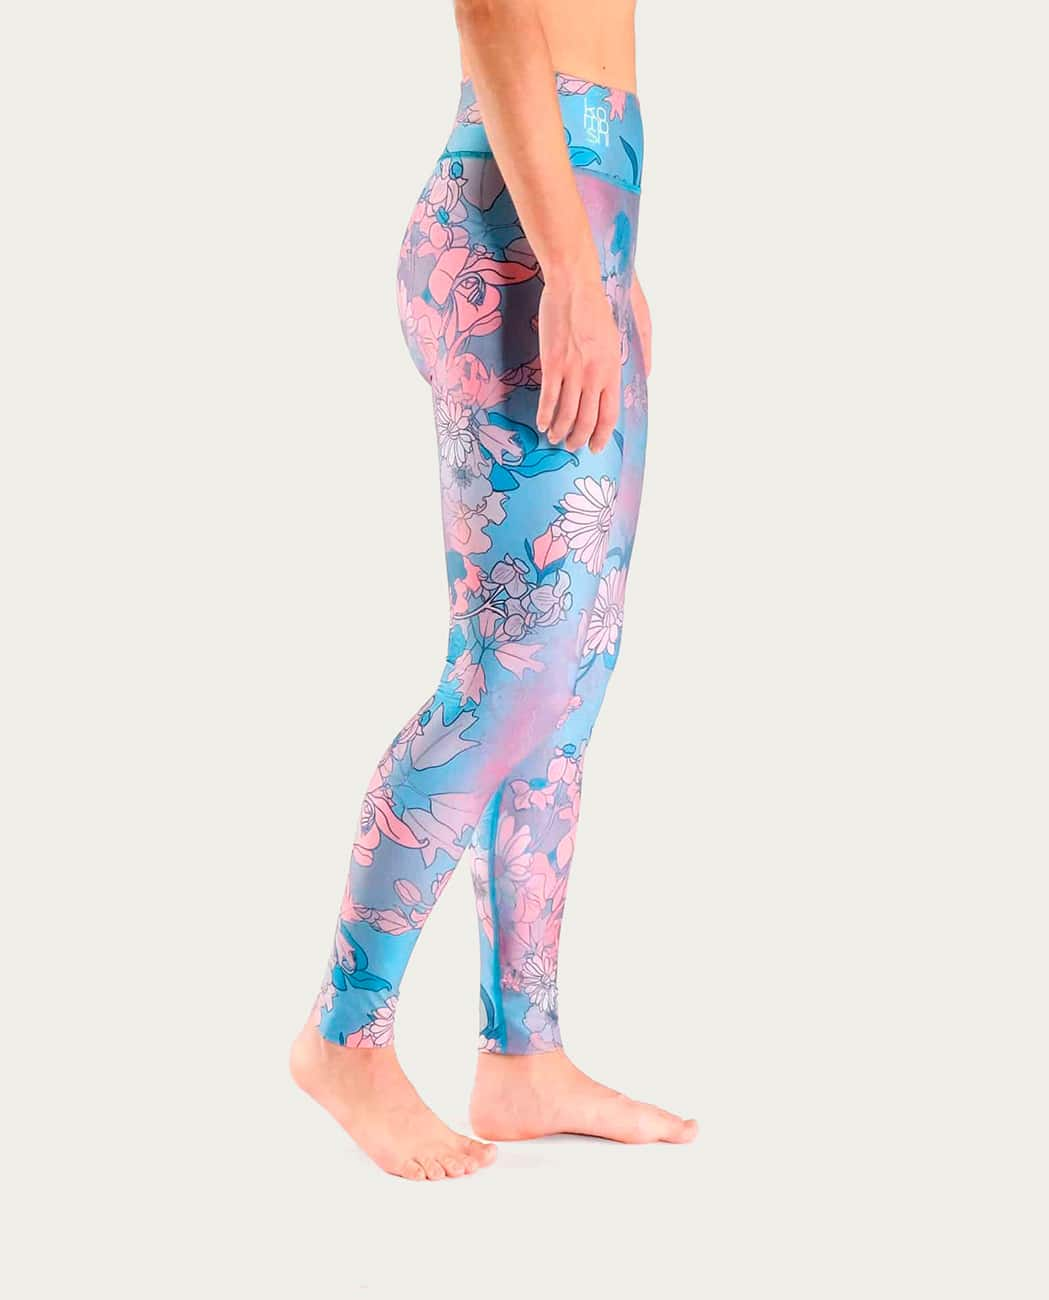 Shanti Yoga Leggings Komoshi Right